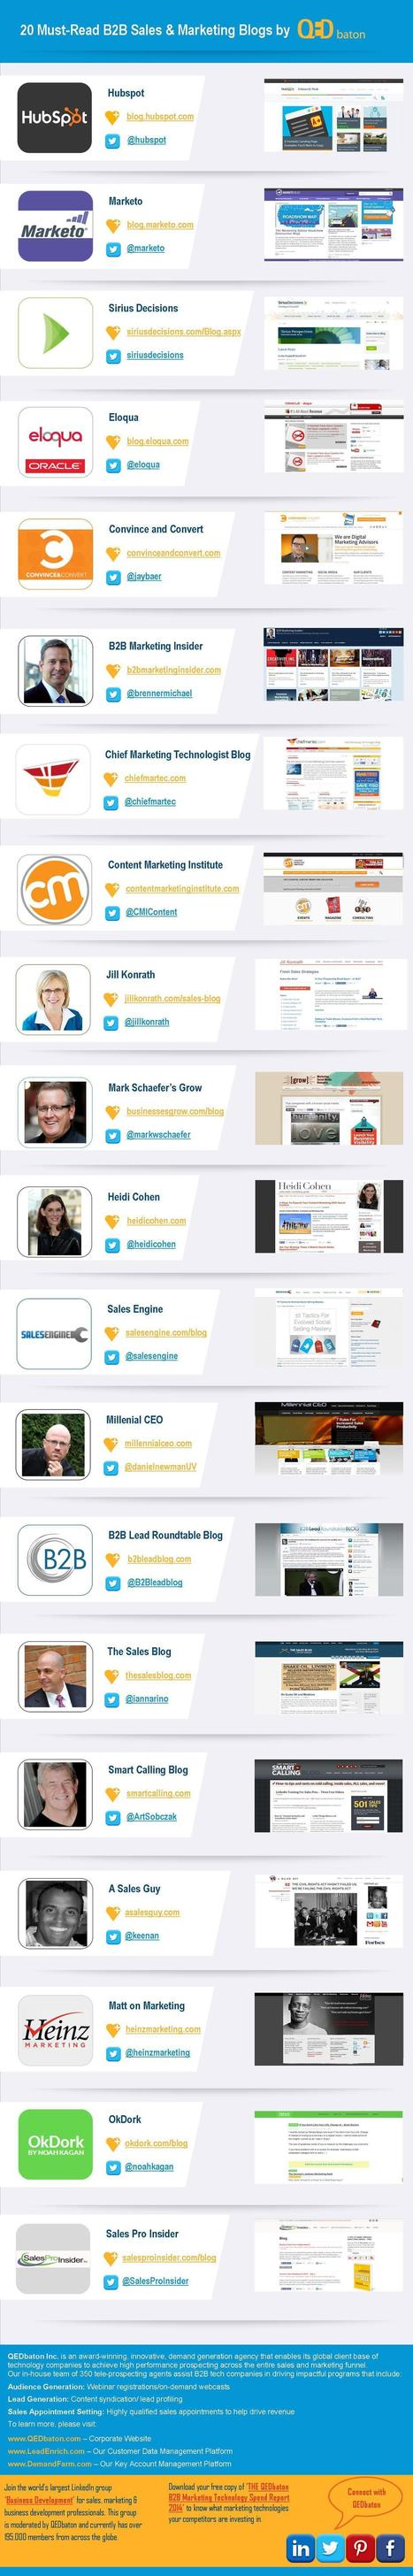 Top 20 Sales And Marketing Blogs For 2014 | QEDbaton | B2B Lead Generation | Scoop.it